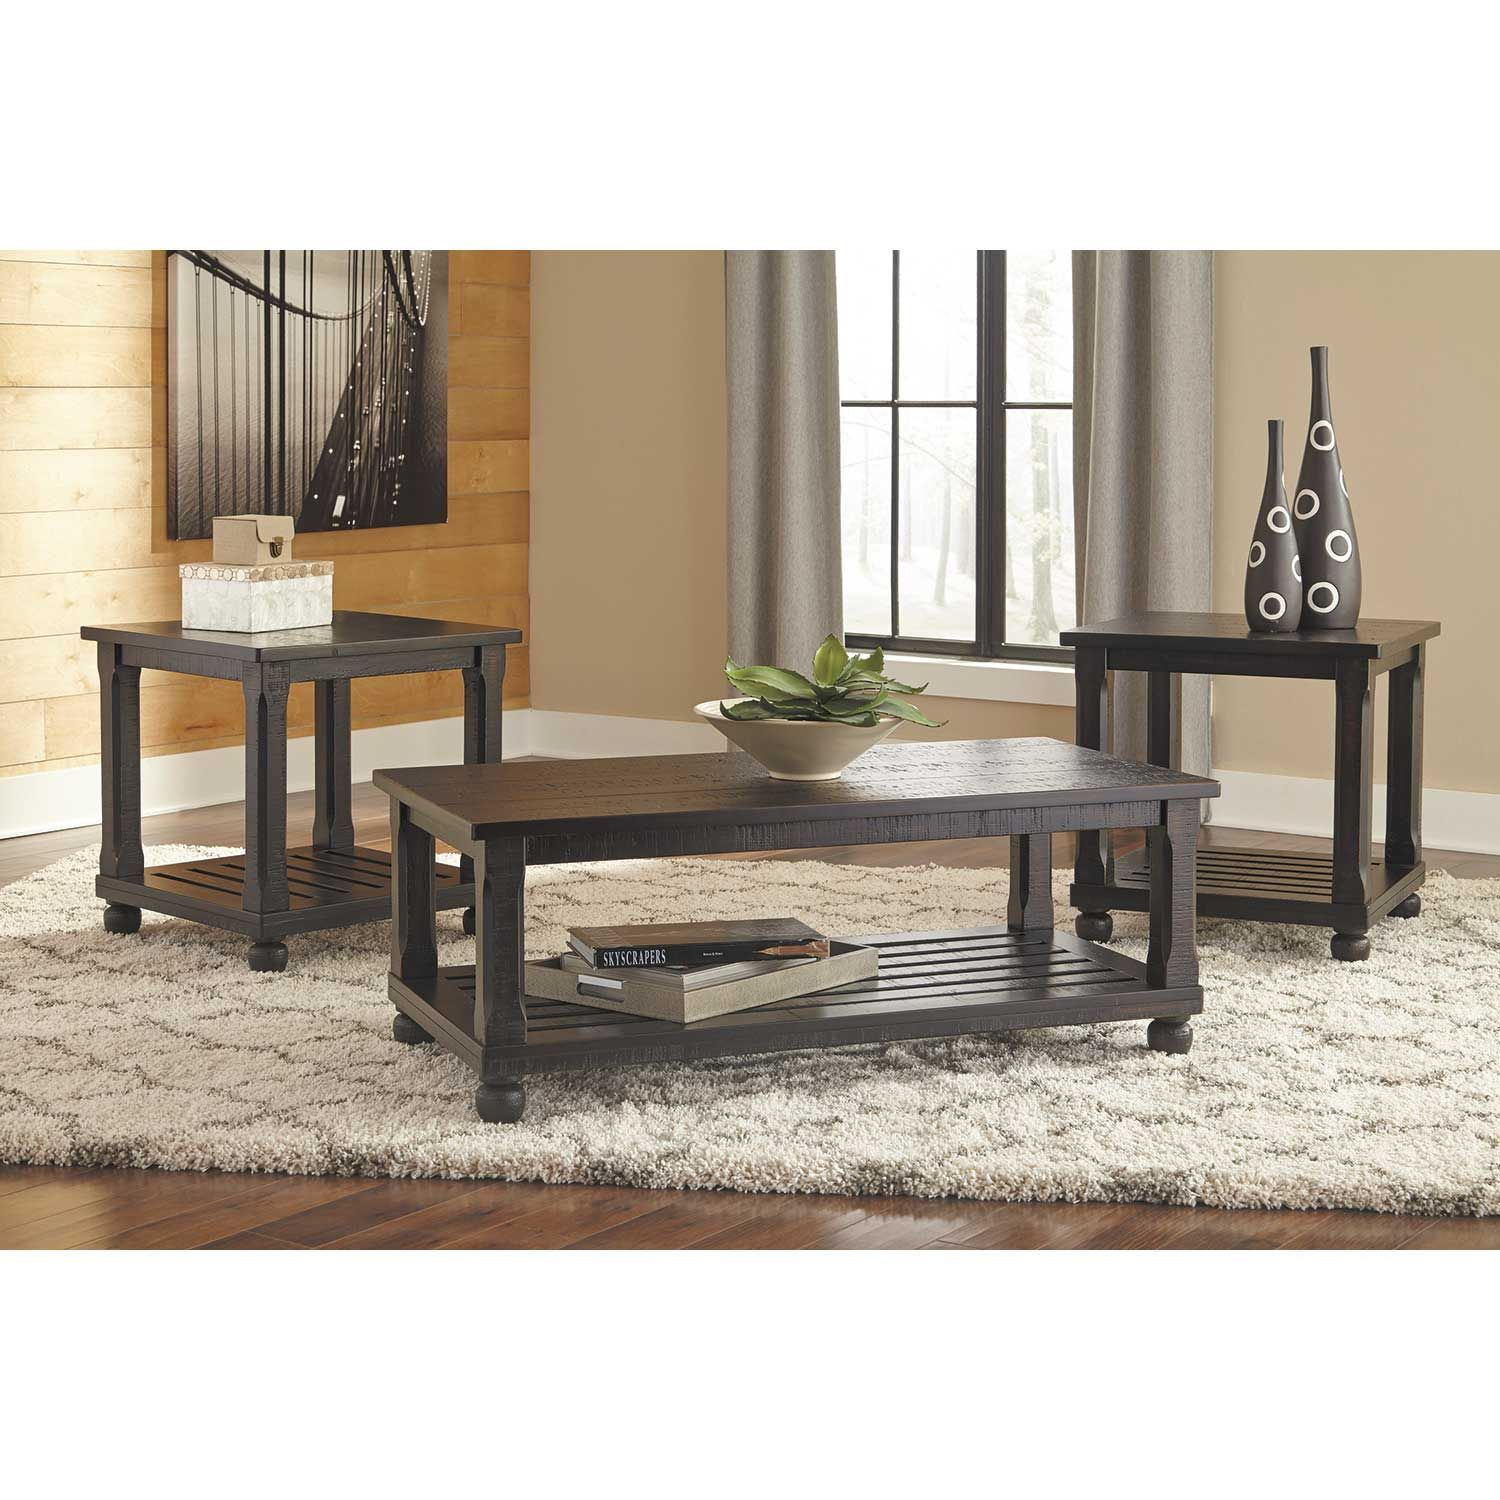 Picture of Mallacar 3-Pack Tables Set